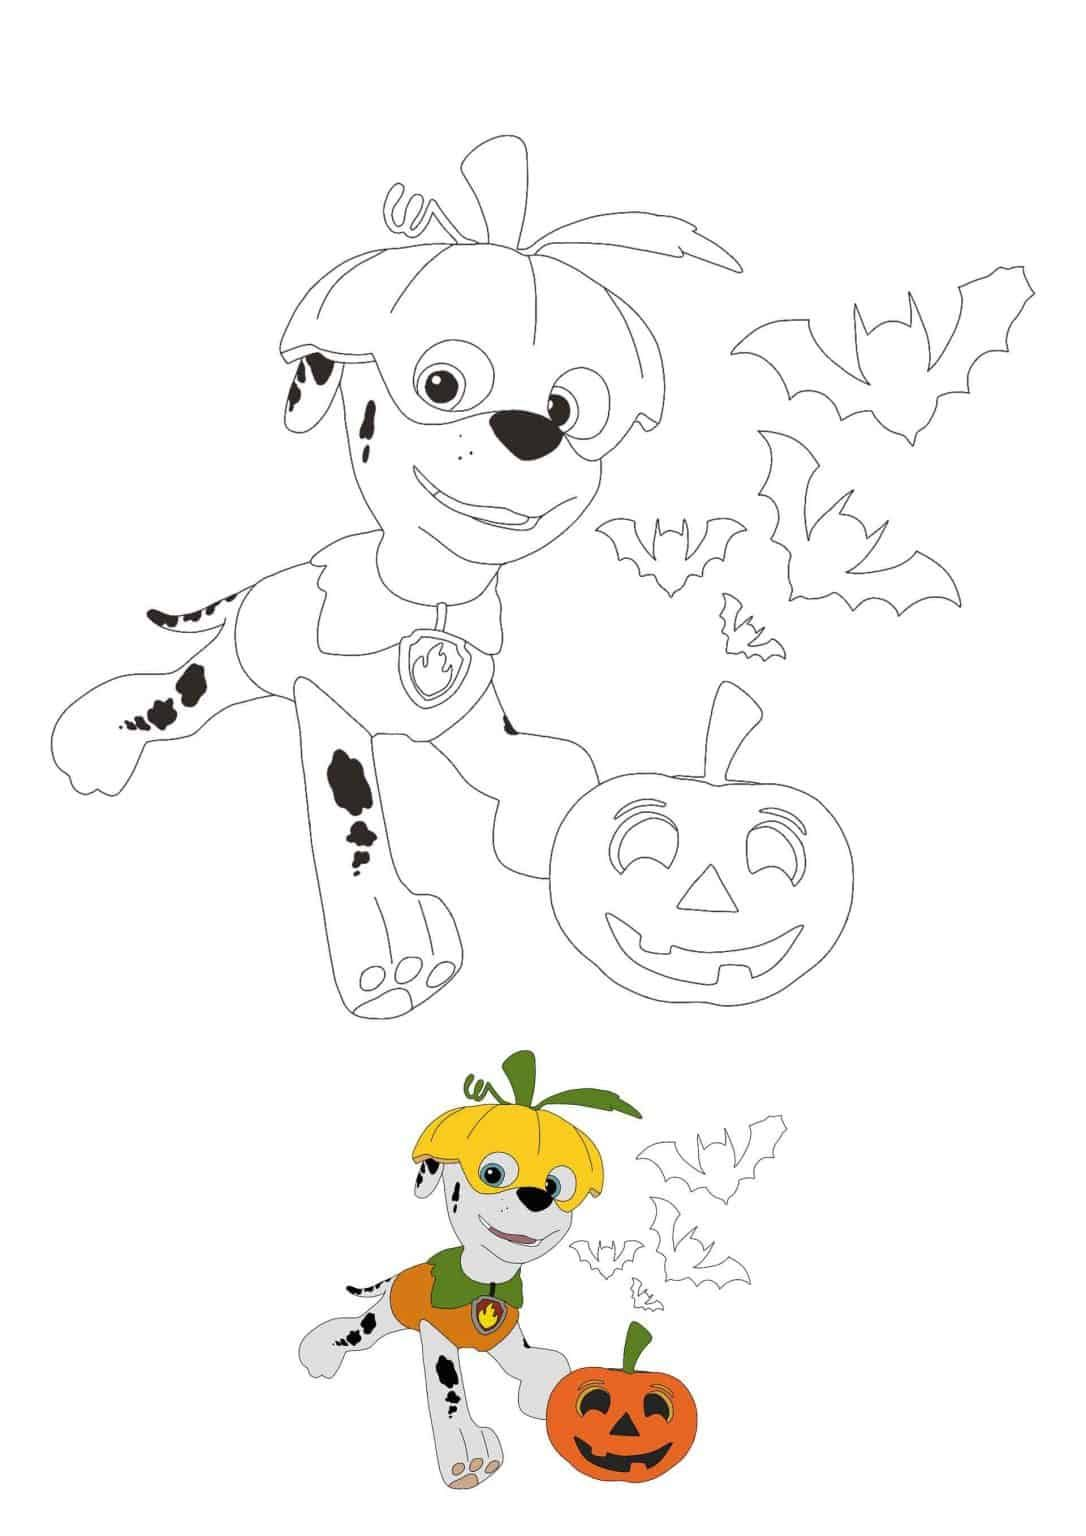 Paw Patrol Halloween Coloring Pages 8 Free Printable Coloring Sheets Paw Patrol Coloring Pages Halloween Coloring Pages Halloween Coloring